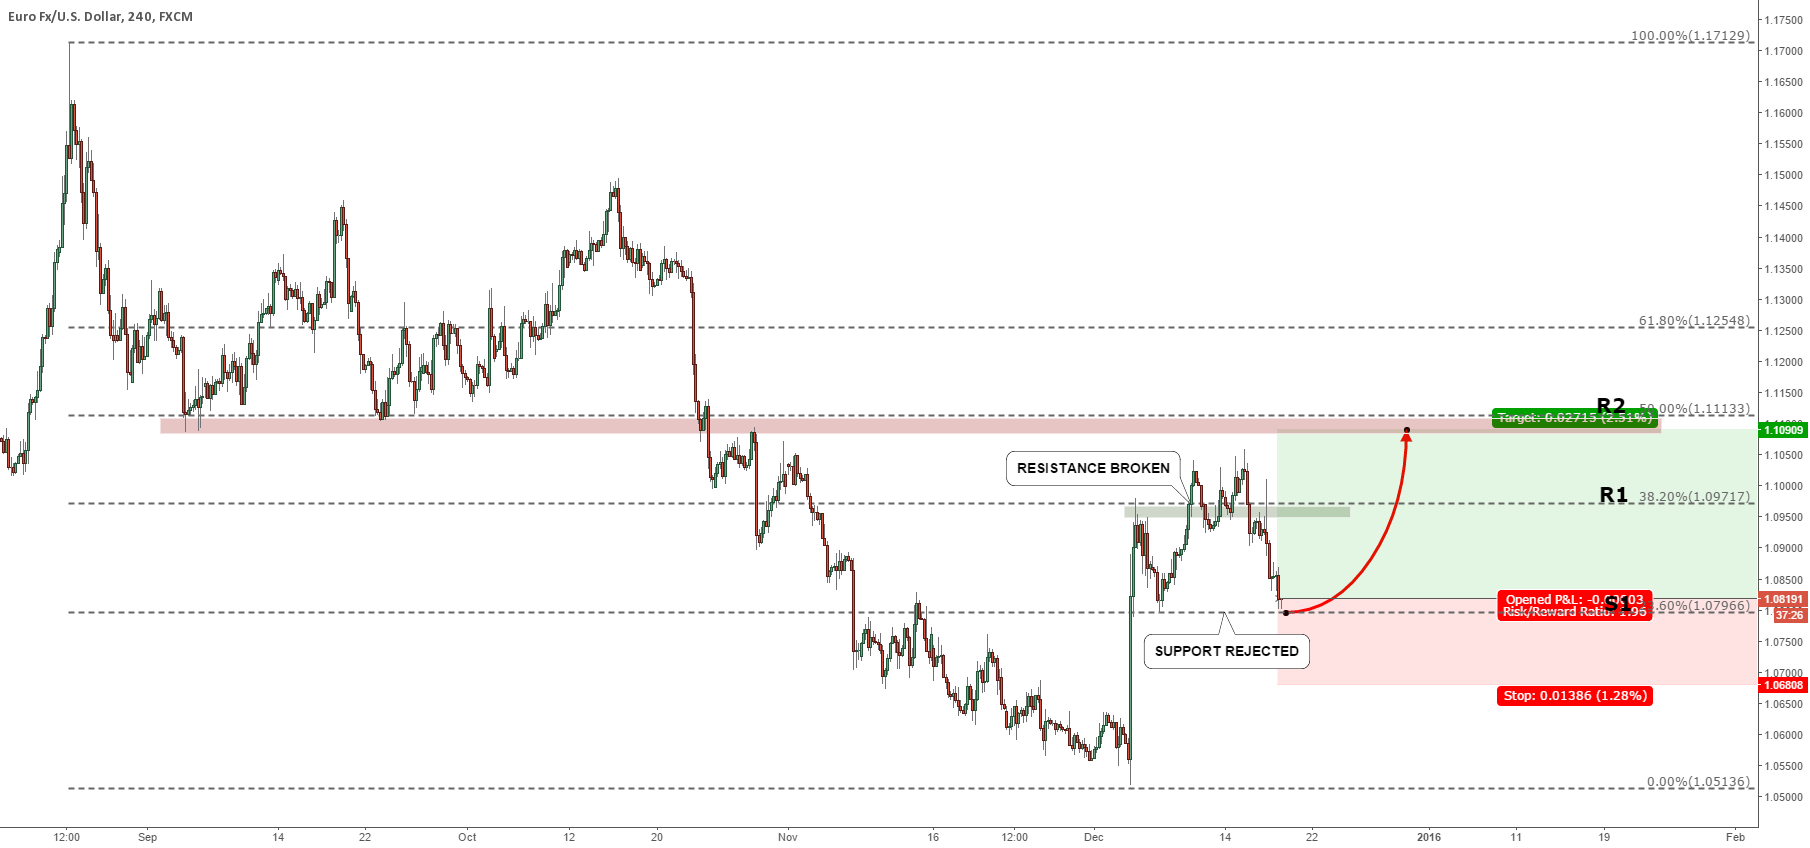 EURUSD AT THE SUPPORT, MOVE UP IS COMING